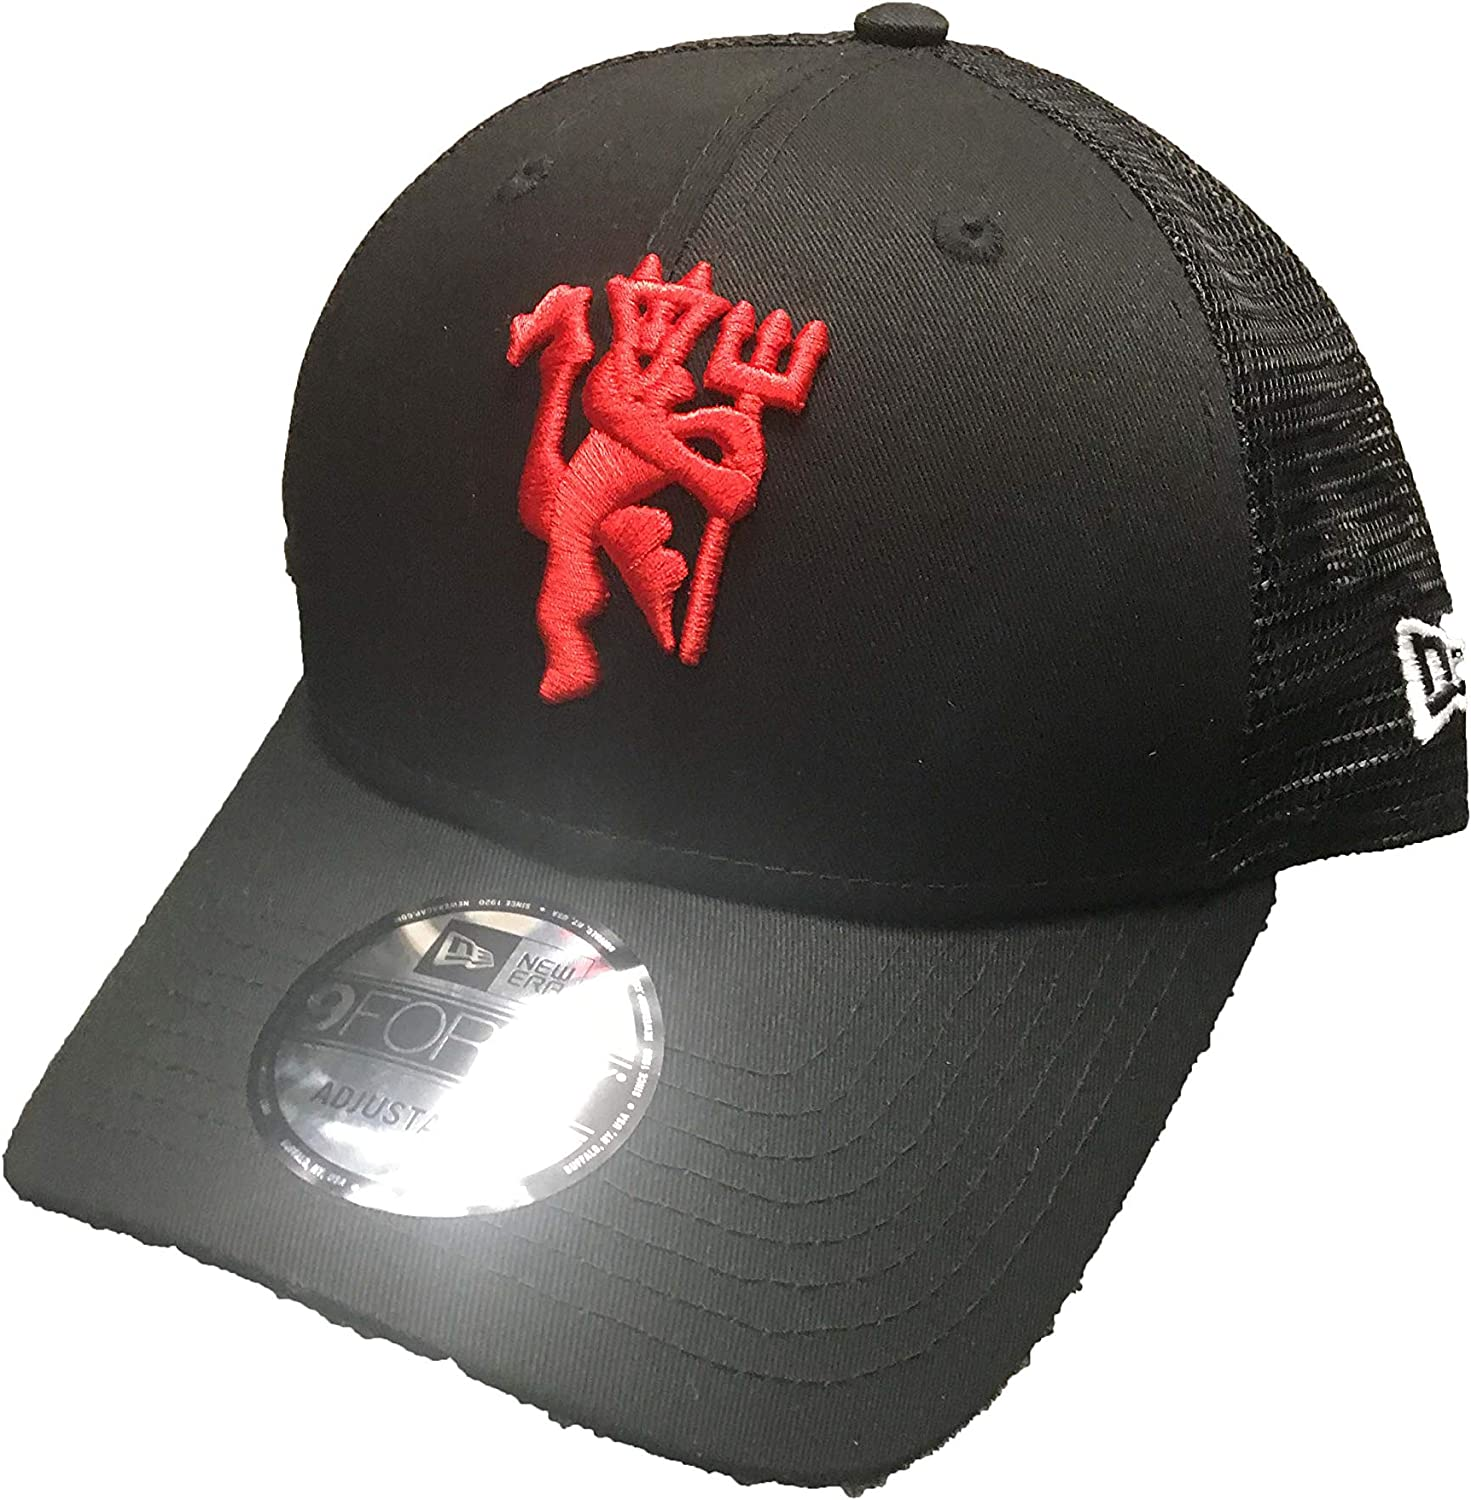 Manchester United Adult Adjustable Black Trucker Devil Hat At Amazon Women S Clothing Store